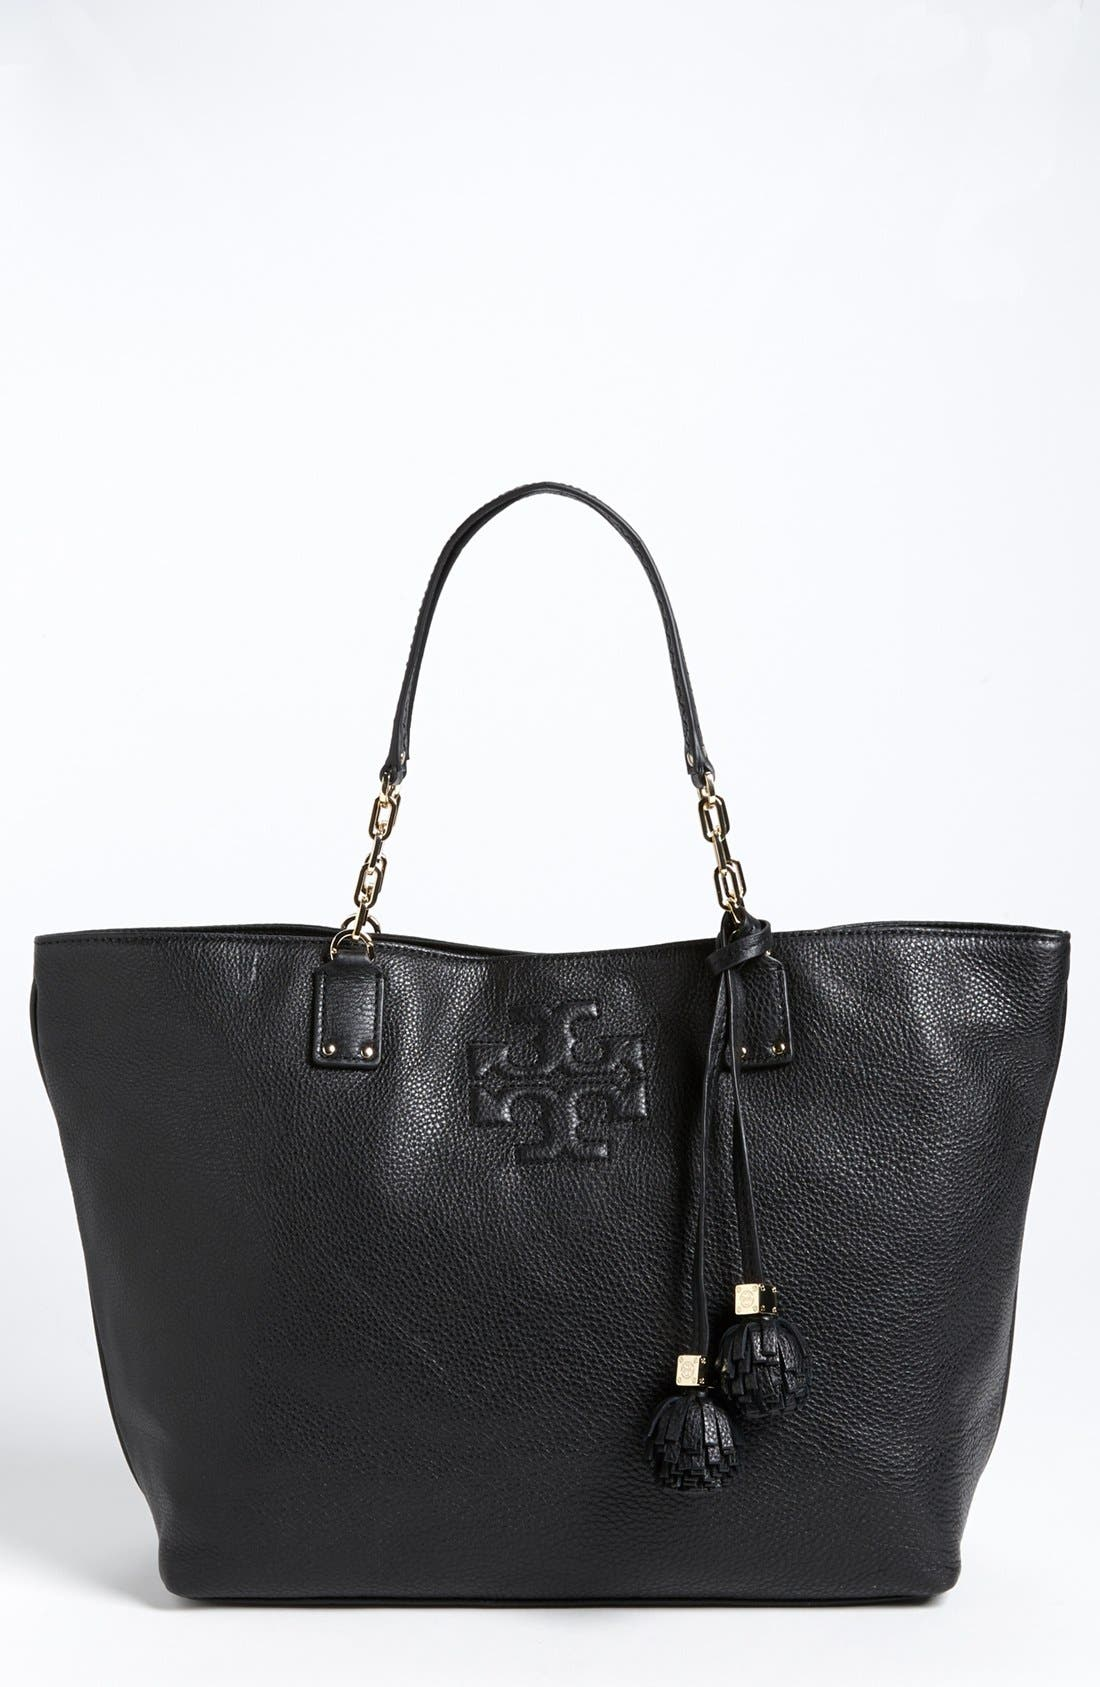 Main Image - Tory Burch 'Thea - Large' Leather Tote